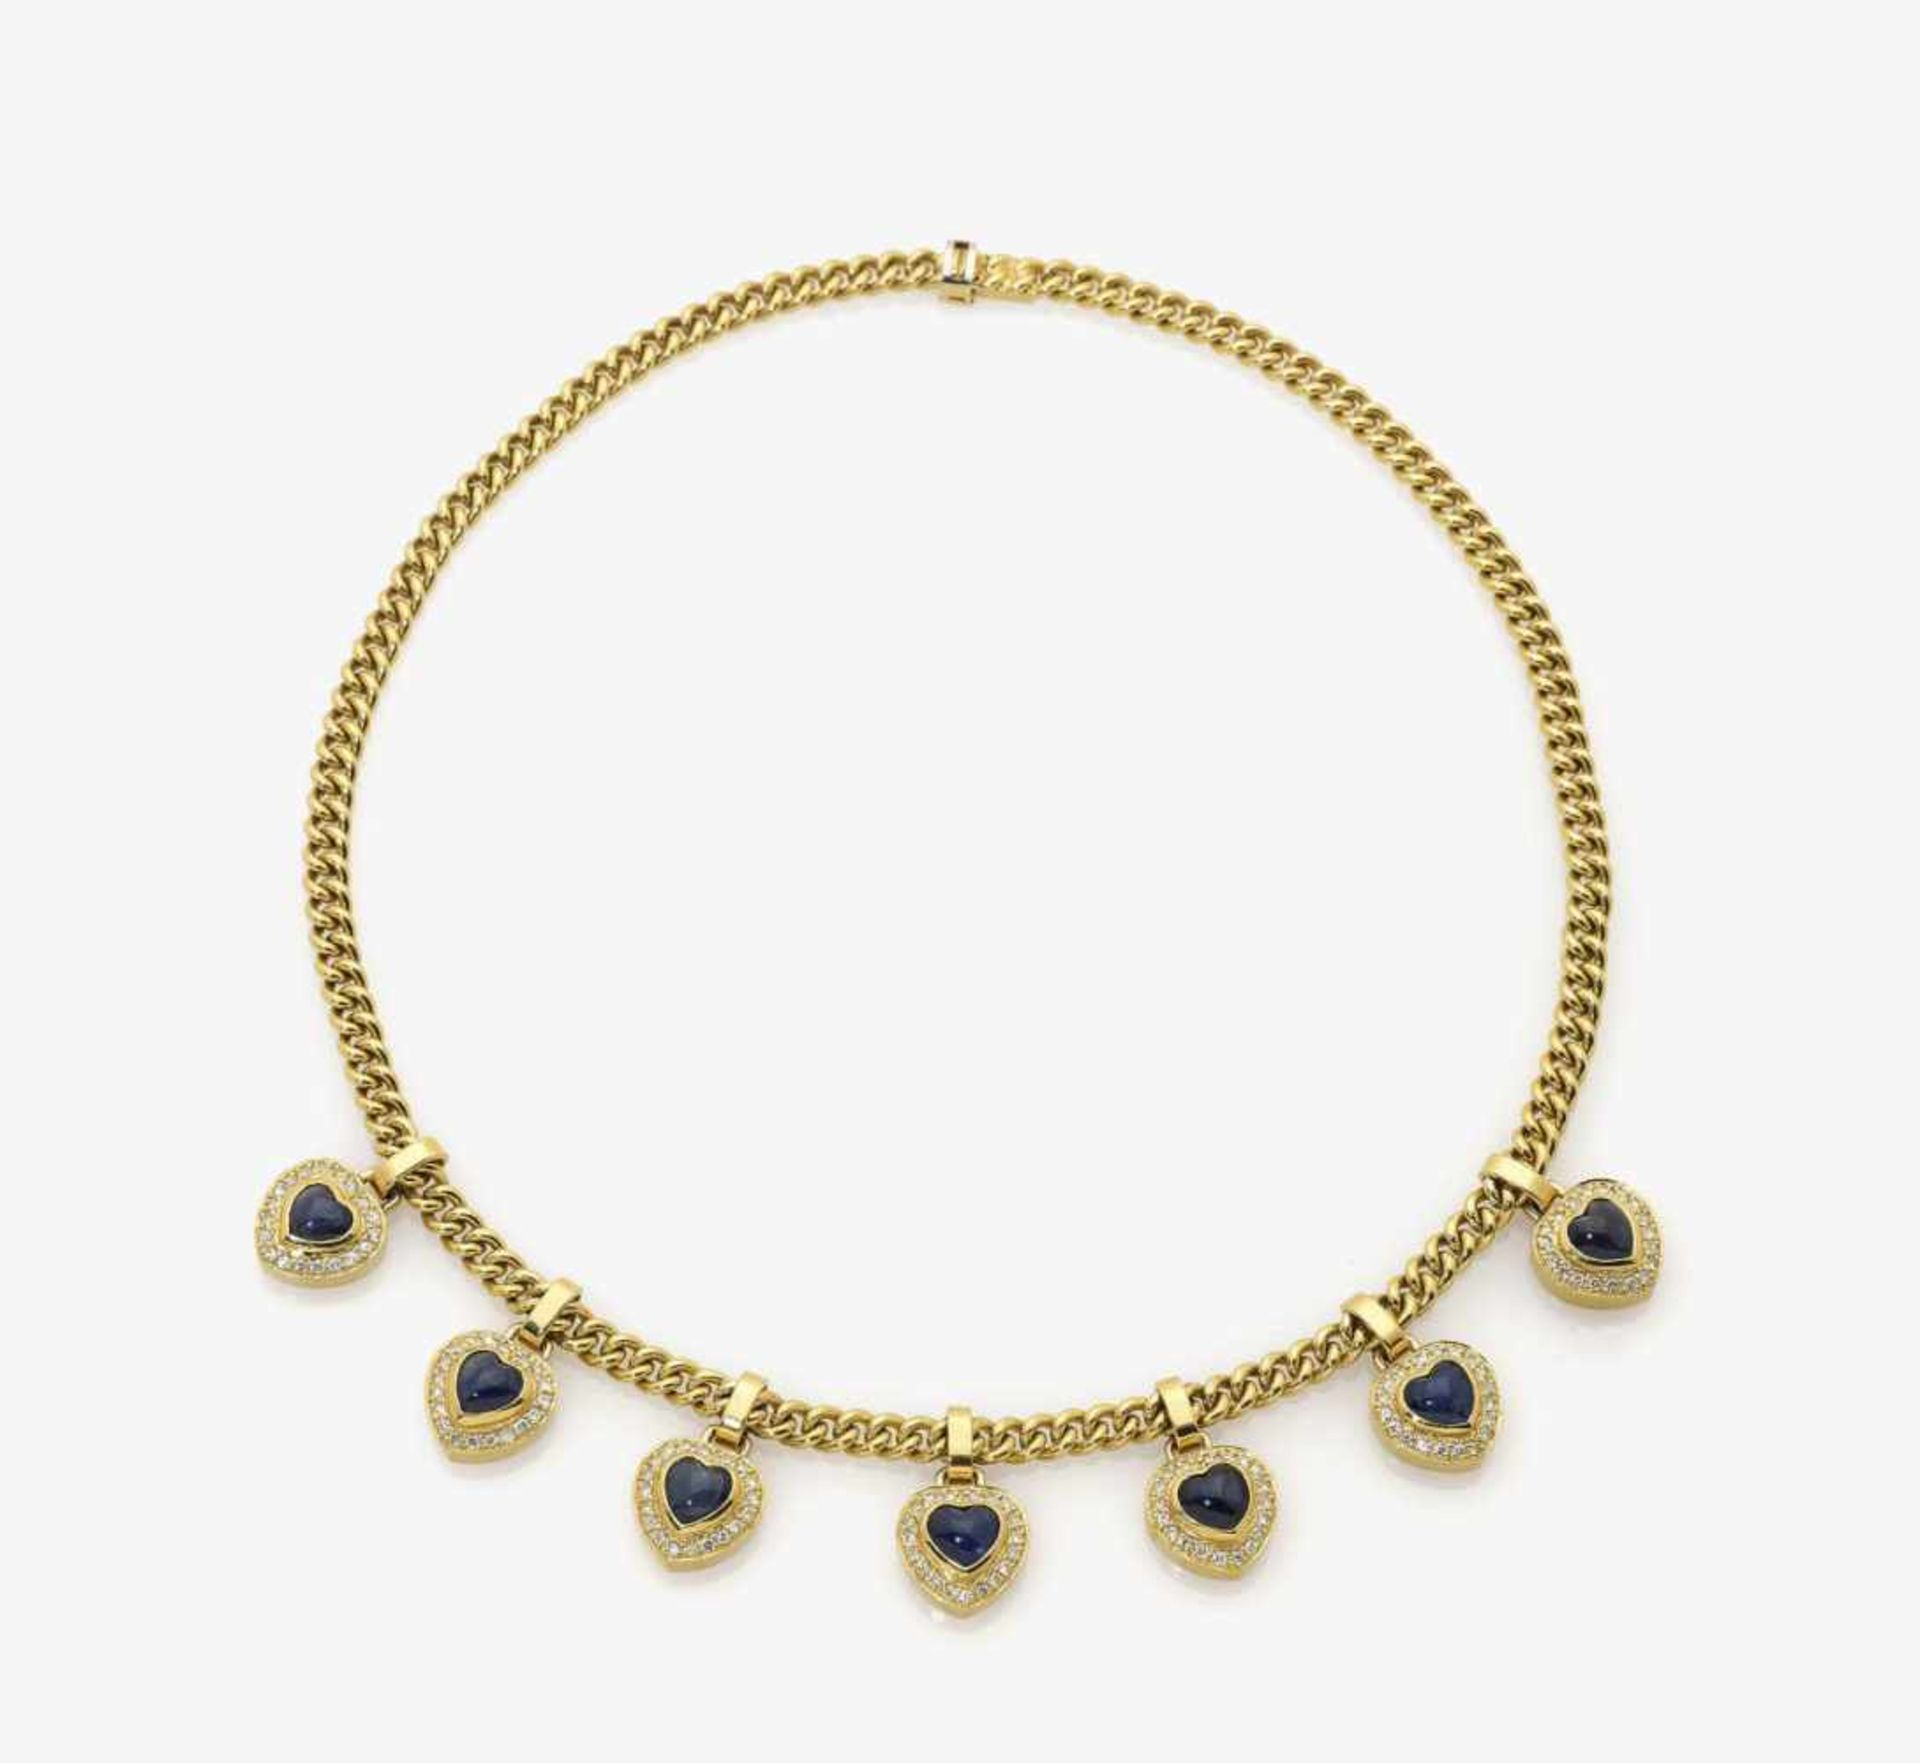 Los 1049 - A Diamond and Sapphire Necklace